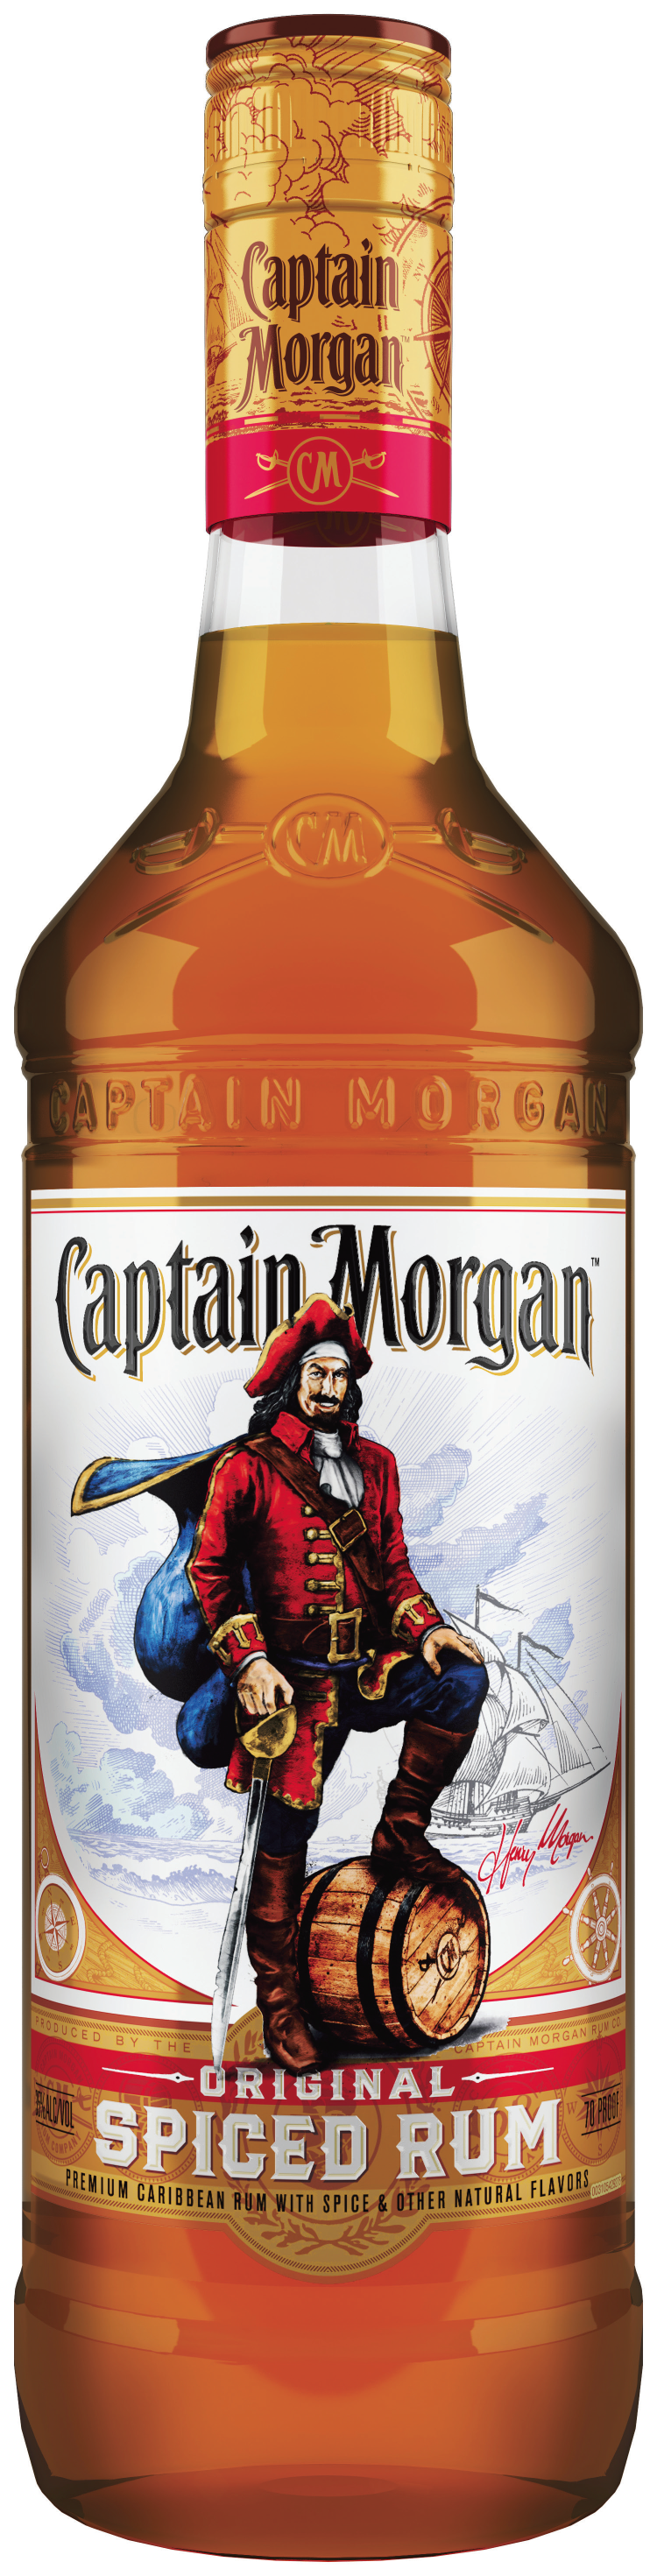 Captain Morgan Rum Releases New Bottle Design